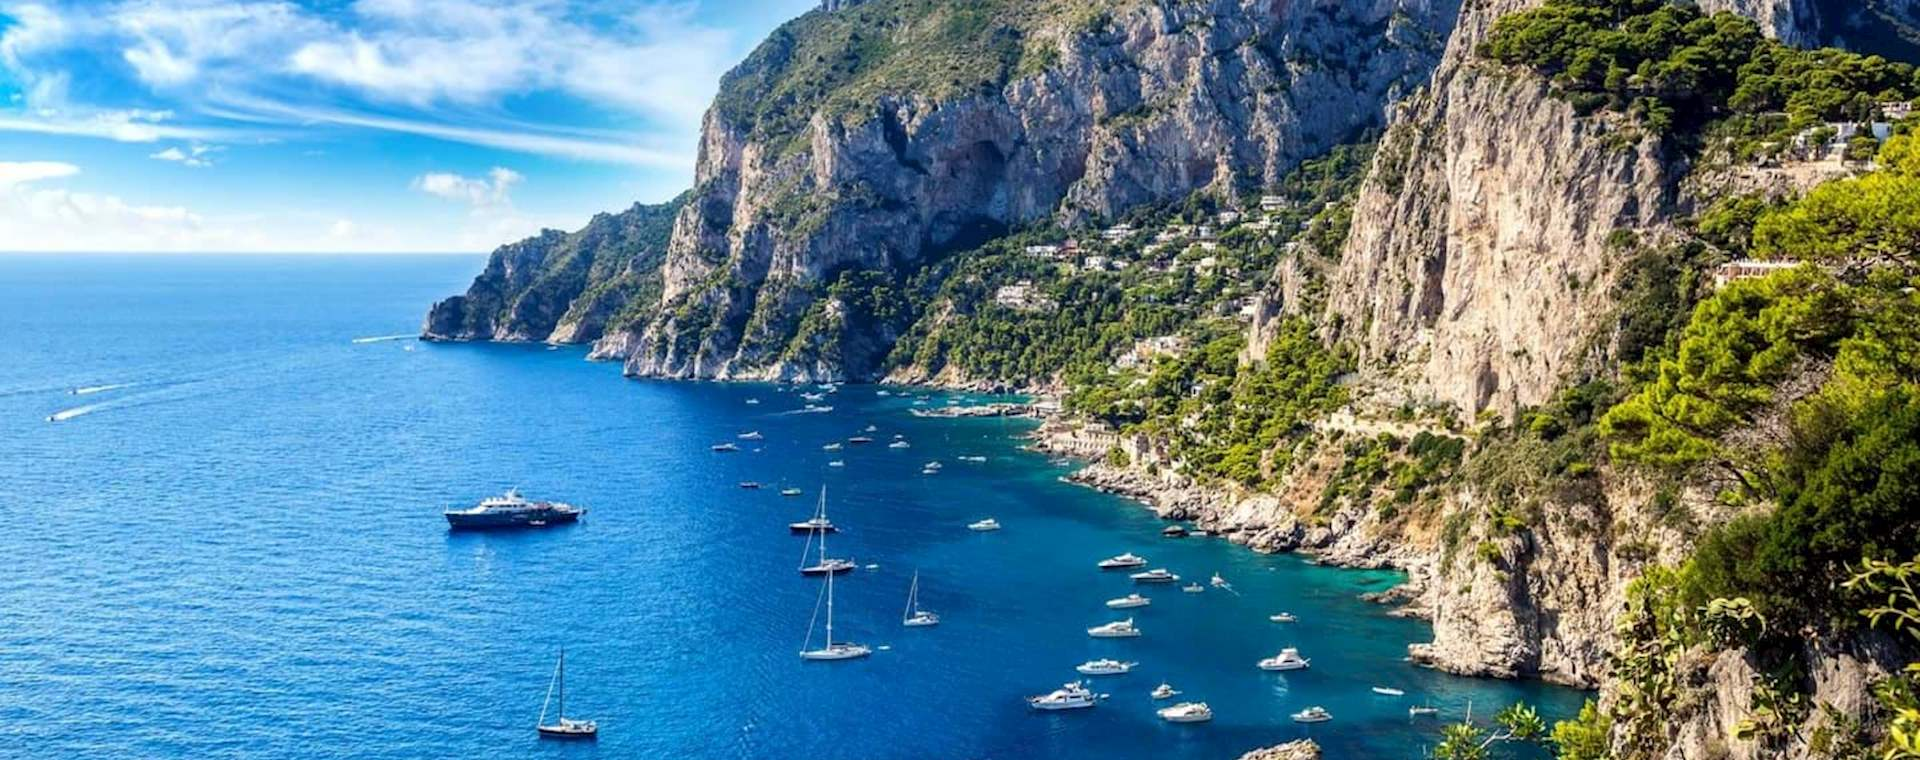 Capri in One Day from Sorrento by High-Speed Ferry